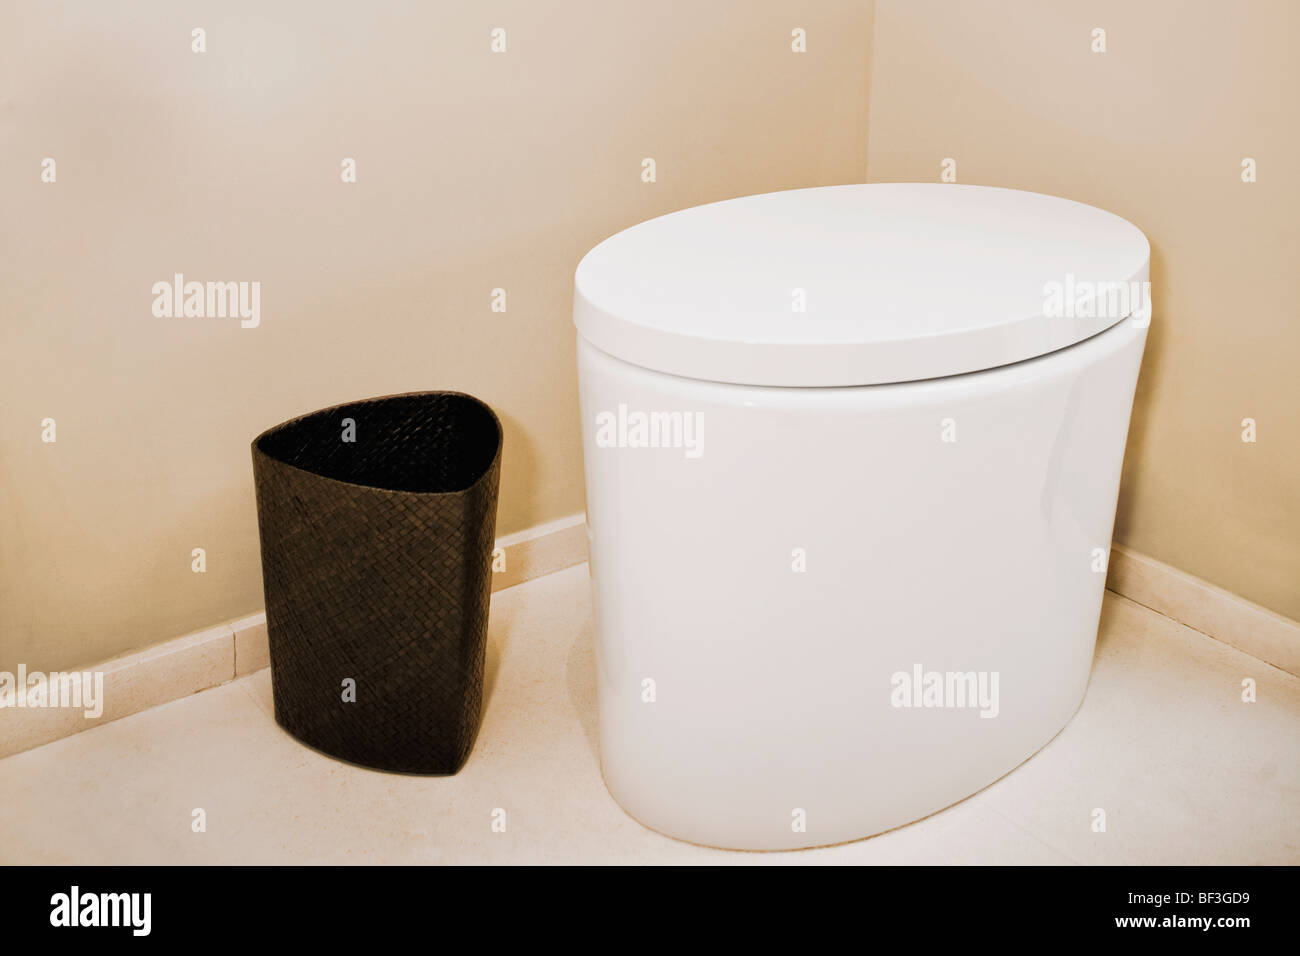 Toilet bowl and wastepaper basket in the bathroom - Stock Image